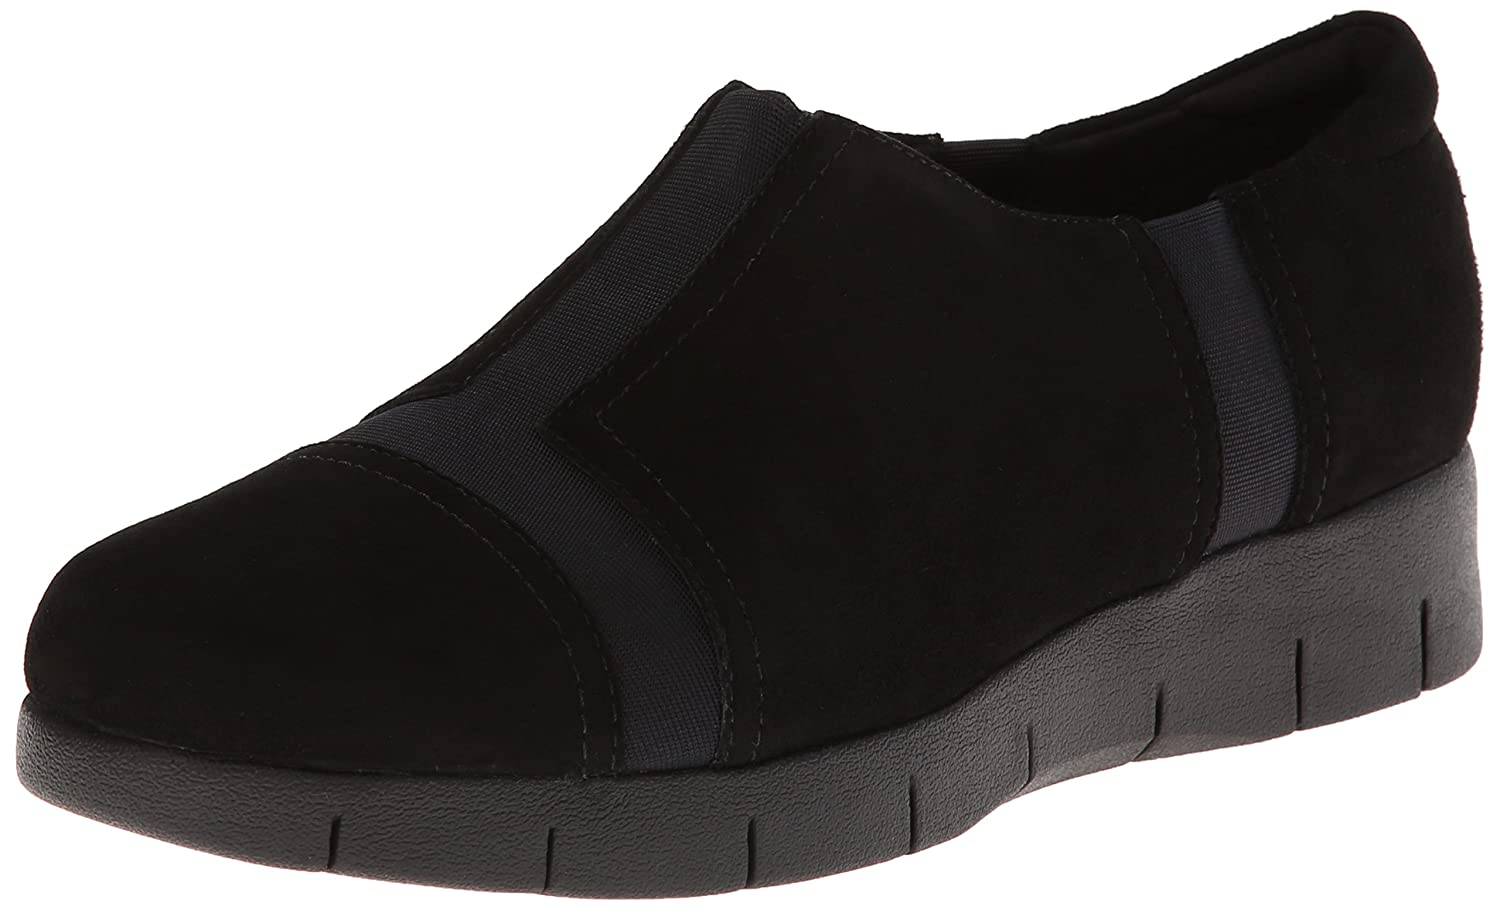 CLARKS Women's Daelyn Plaza Flat B00ISP1WO2 7 B(M) US|Black Suede